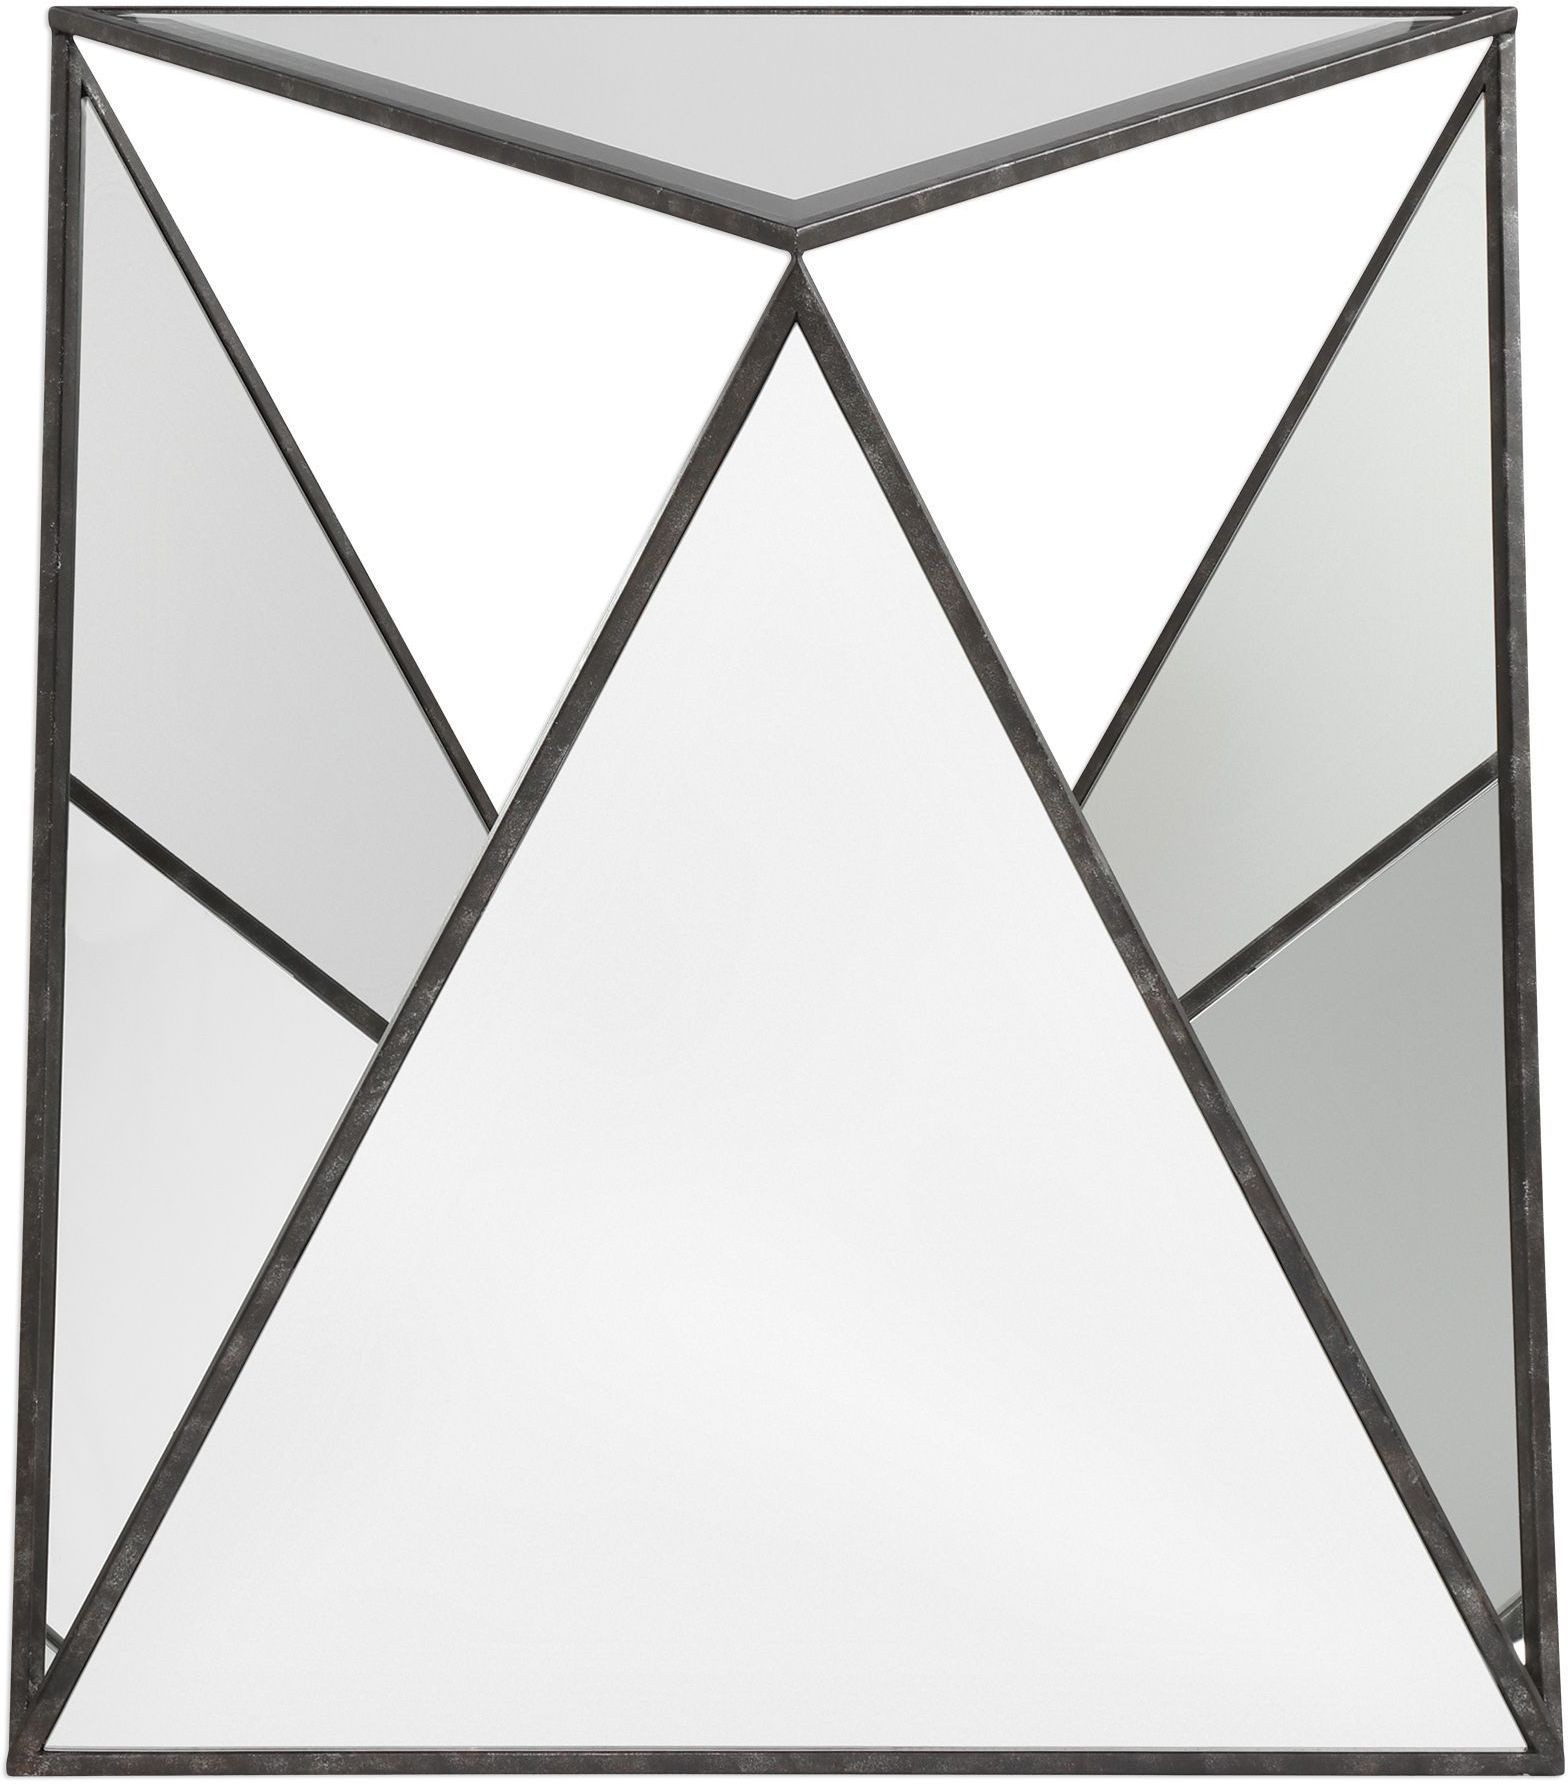 hilaire tripod mirrored accent table from uttermost coleman furniture laton inside small chest drawers made usa sparkle lamps silver trunk coffee round marble top bistro green end